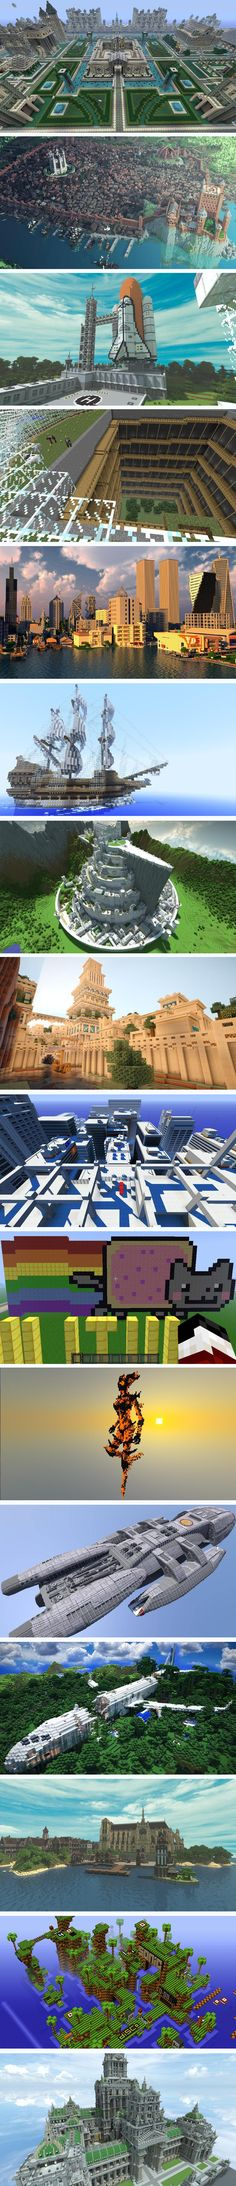 The awesome creations of some people in Minecraft. Video Minecraft, Skins Minecraft, Amazing Minecraft, Minecraft Designs, How To Play Minecraft, Minecraft Party, Minecraft Stuff, Minecraft Funny, Video Game Humor